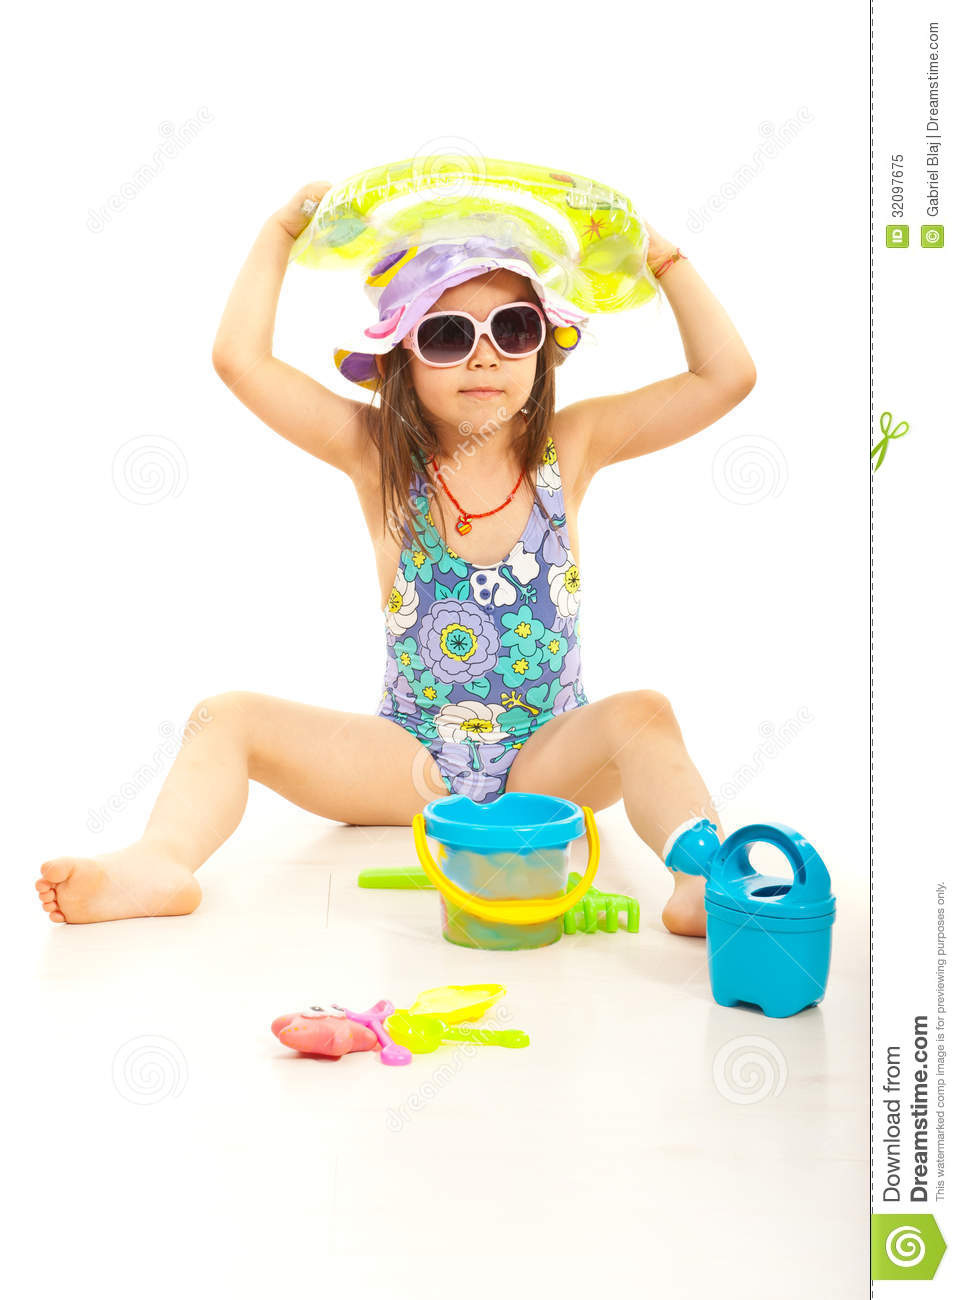 Beach Toys For Girls : Cute beach girl with toys royalty free stock photo image